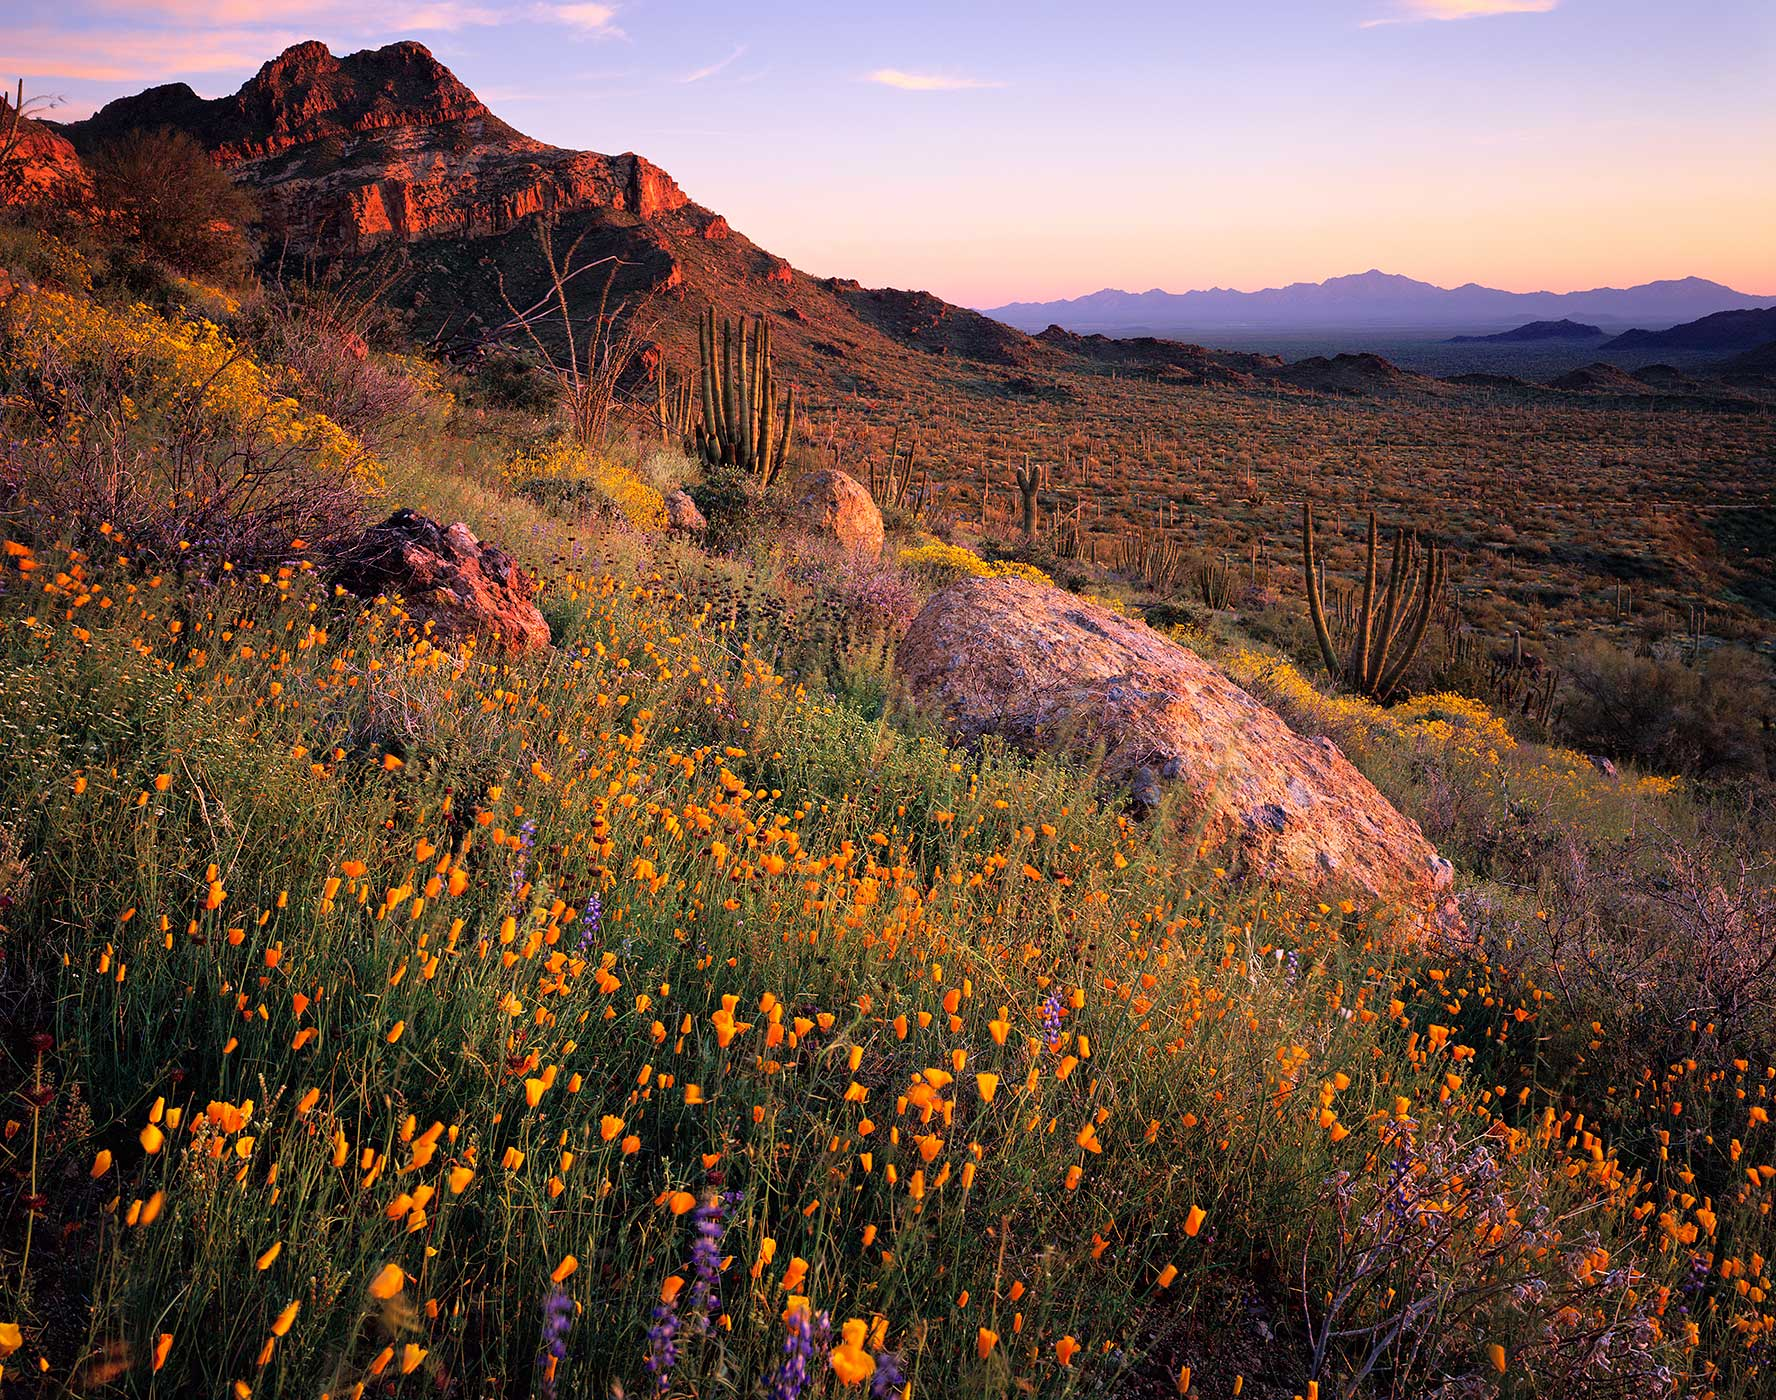 603 Desert in Bloom, Organ Pipe Cactus National Monument, Arizona